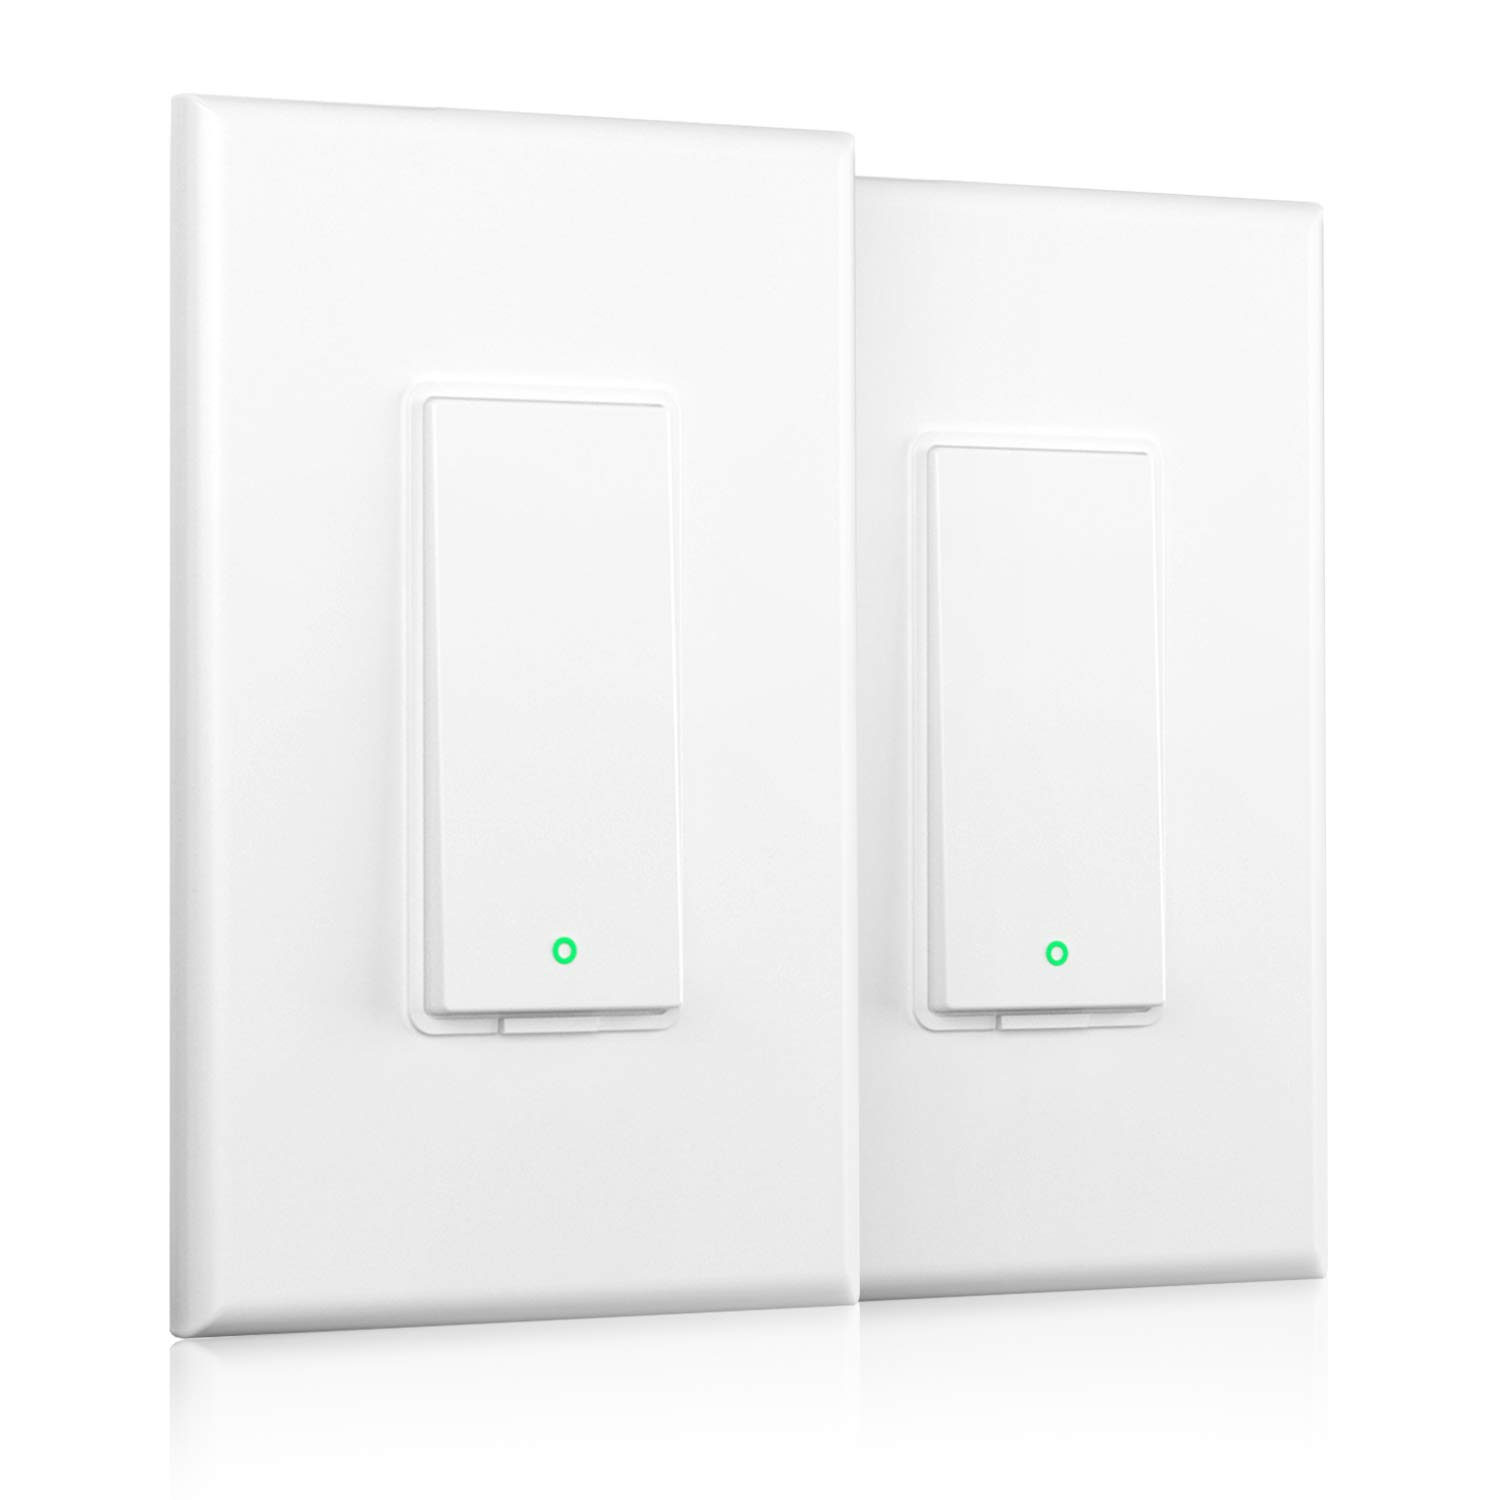 meross Smart Light Switch Single Pole Compatible with Alexa, Google Assistant & SmartThings, 2.4Ghz WiFi Light Switch, Neutral Wire Required, Voice Remote Control, Schedules, No Hub Needed, 2 Pack